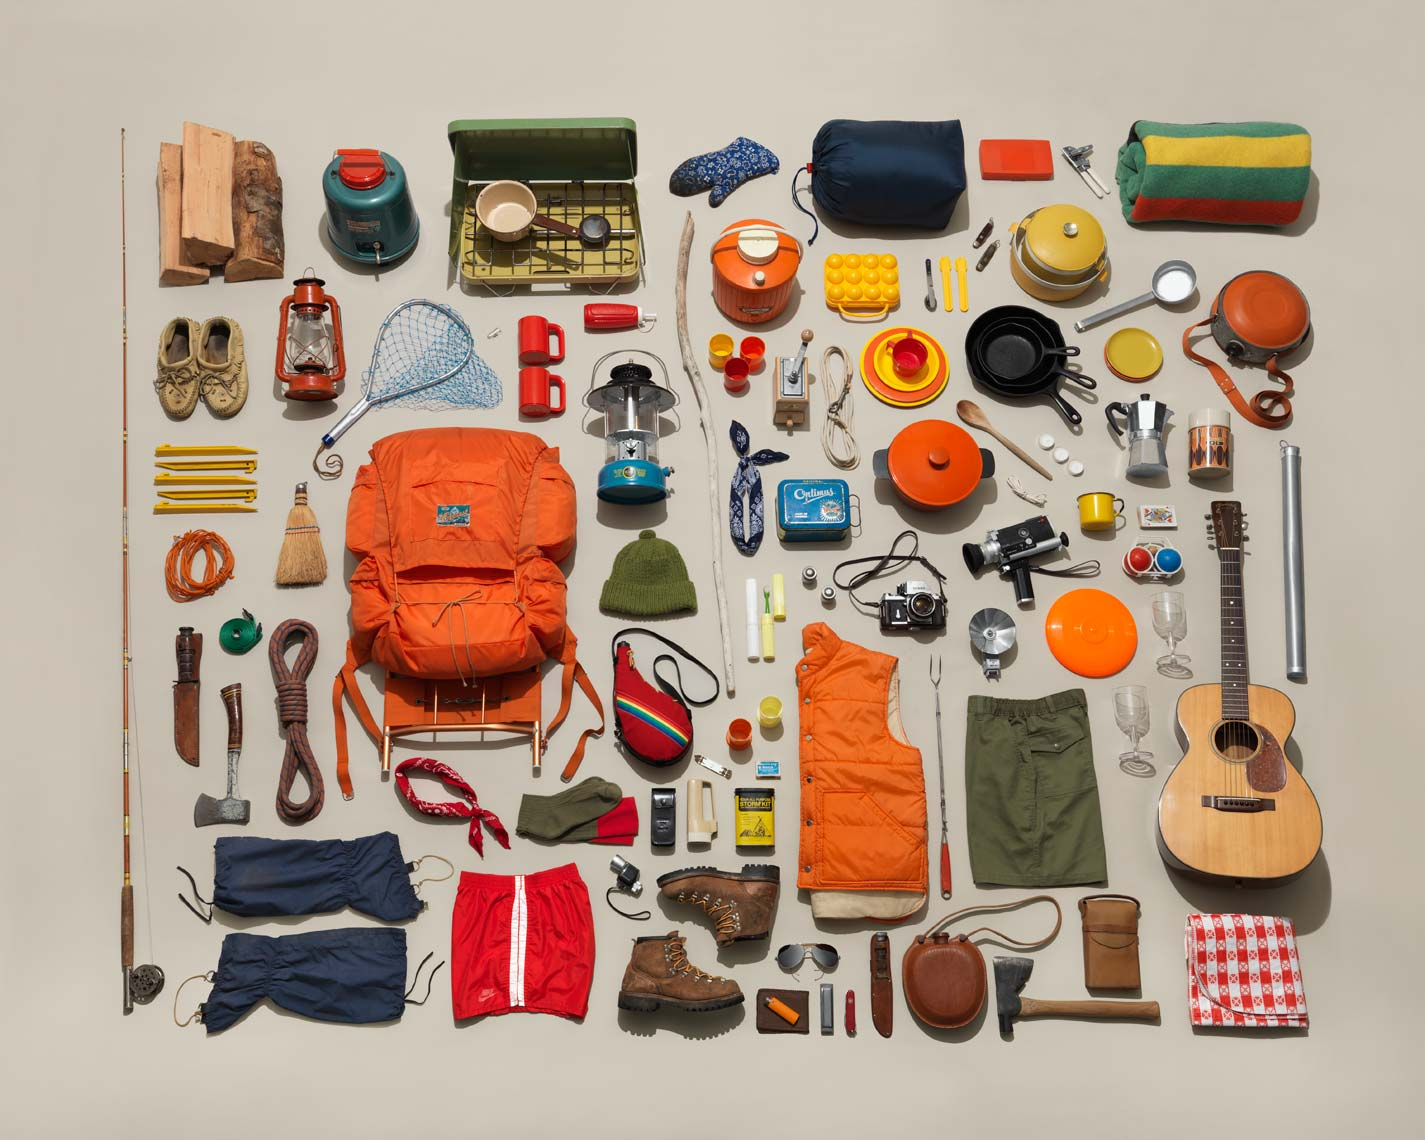 classic camping gear organized neatly